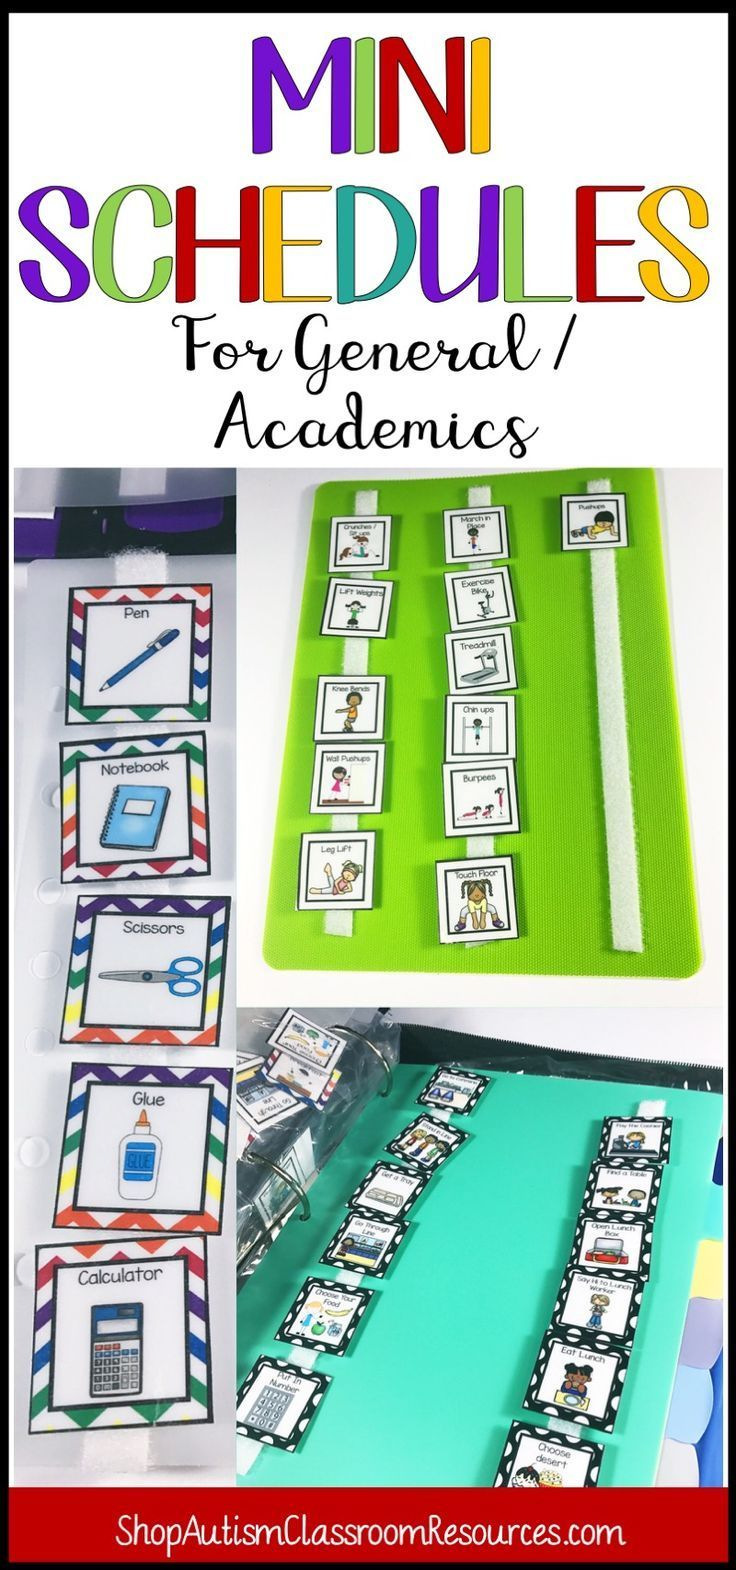 You have your daily schedules and calendars, but some students with autism still need extra activity-based schedules.  Schedules for science, PE, Recess, music, art, and academics in 5 backgrounds and 2 sizes.  You'll love these!